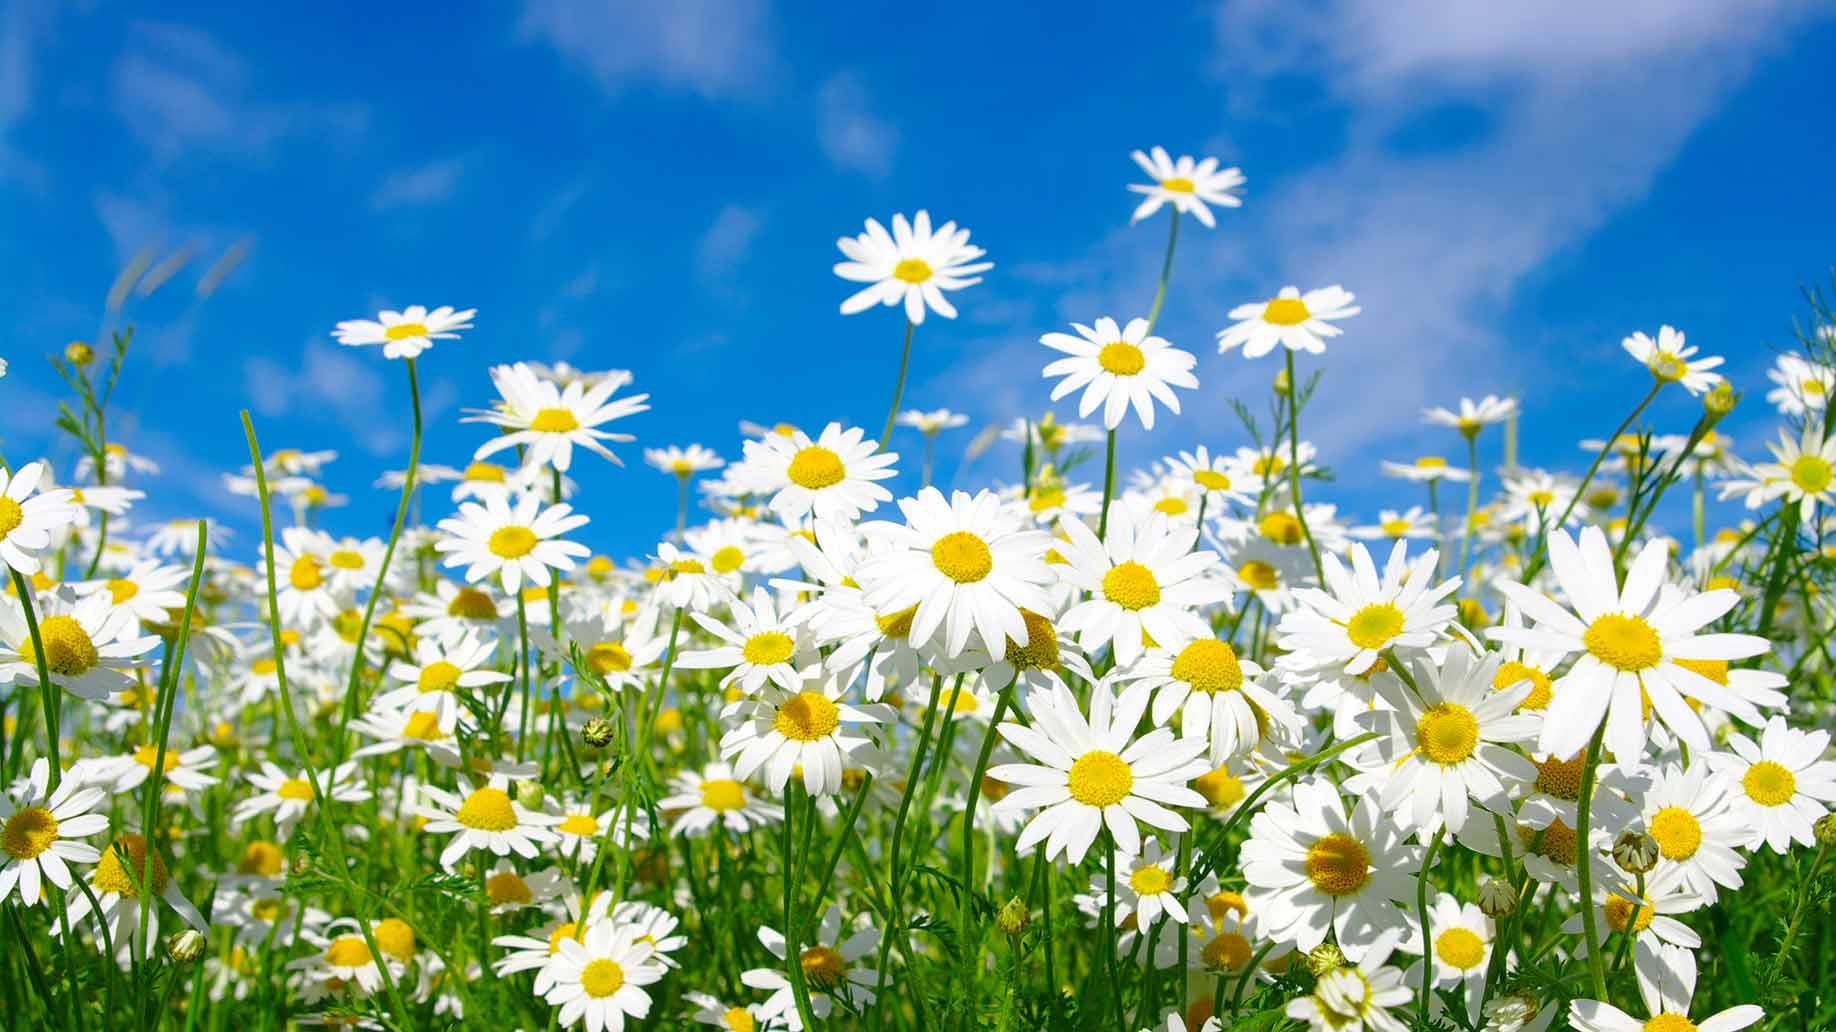 feverfew herb white yellow flowers headaches migraines natural remedies